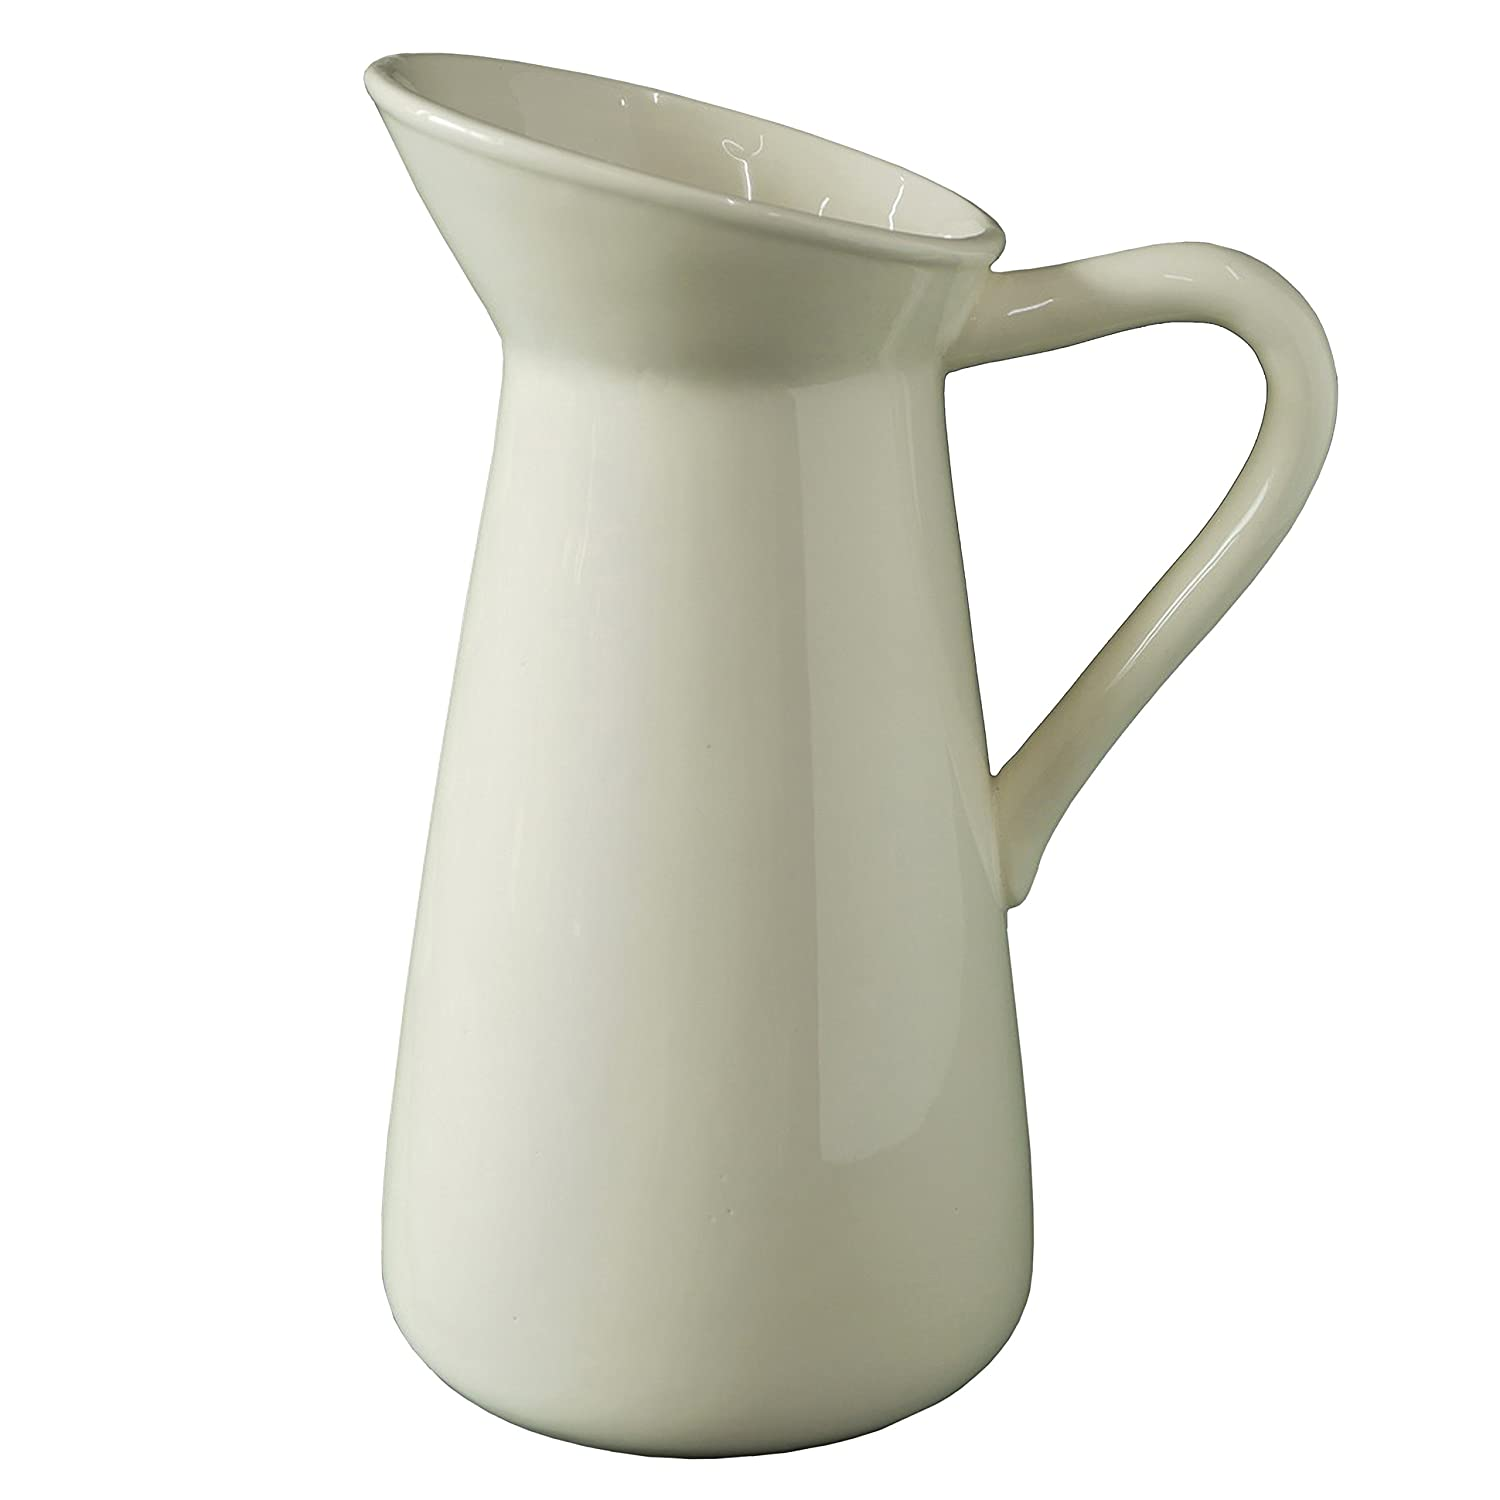 Vases amazon home decor hosleys cream ceramic pitcher vase 10 high for flowers decorative use reviewsmspy